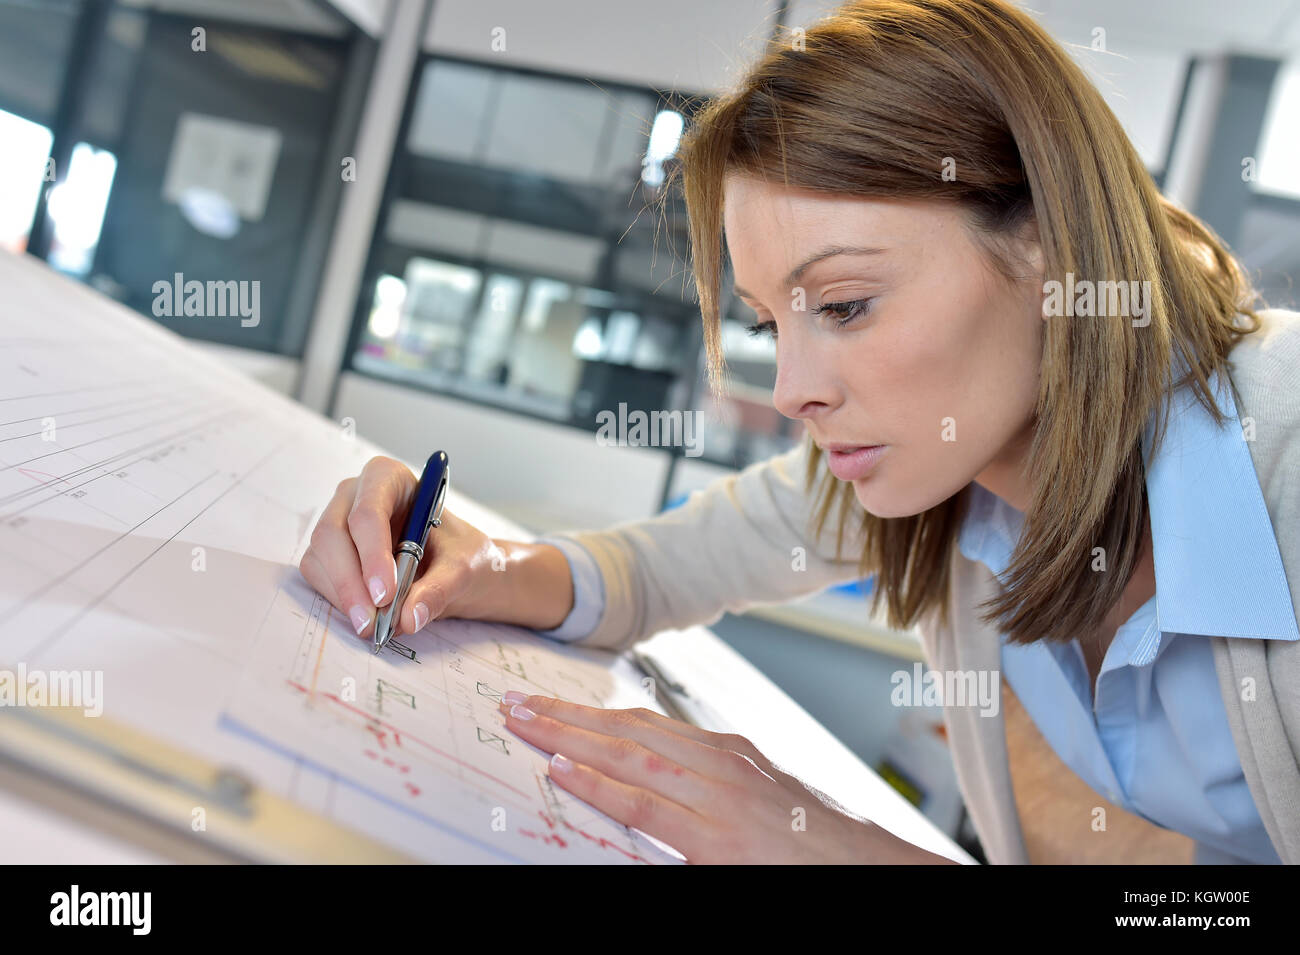 Femme ingénieur travaillant sur blueprint in office Photo Stock